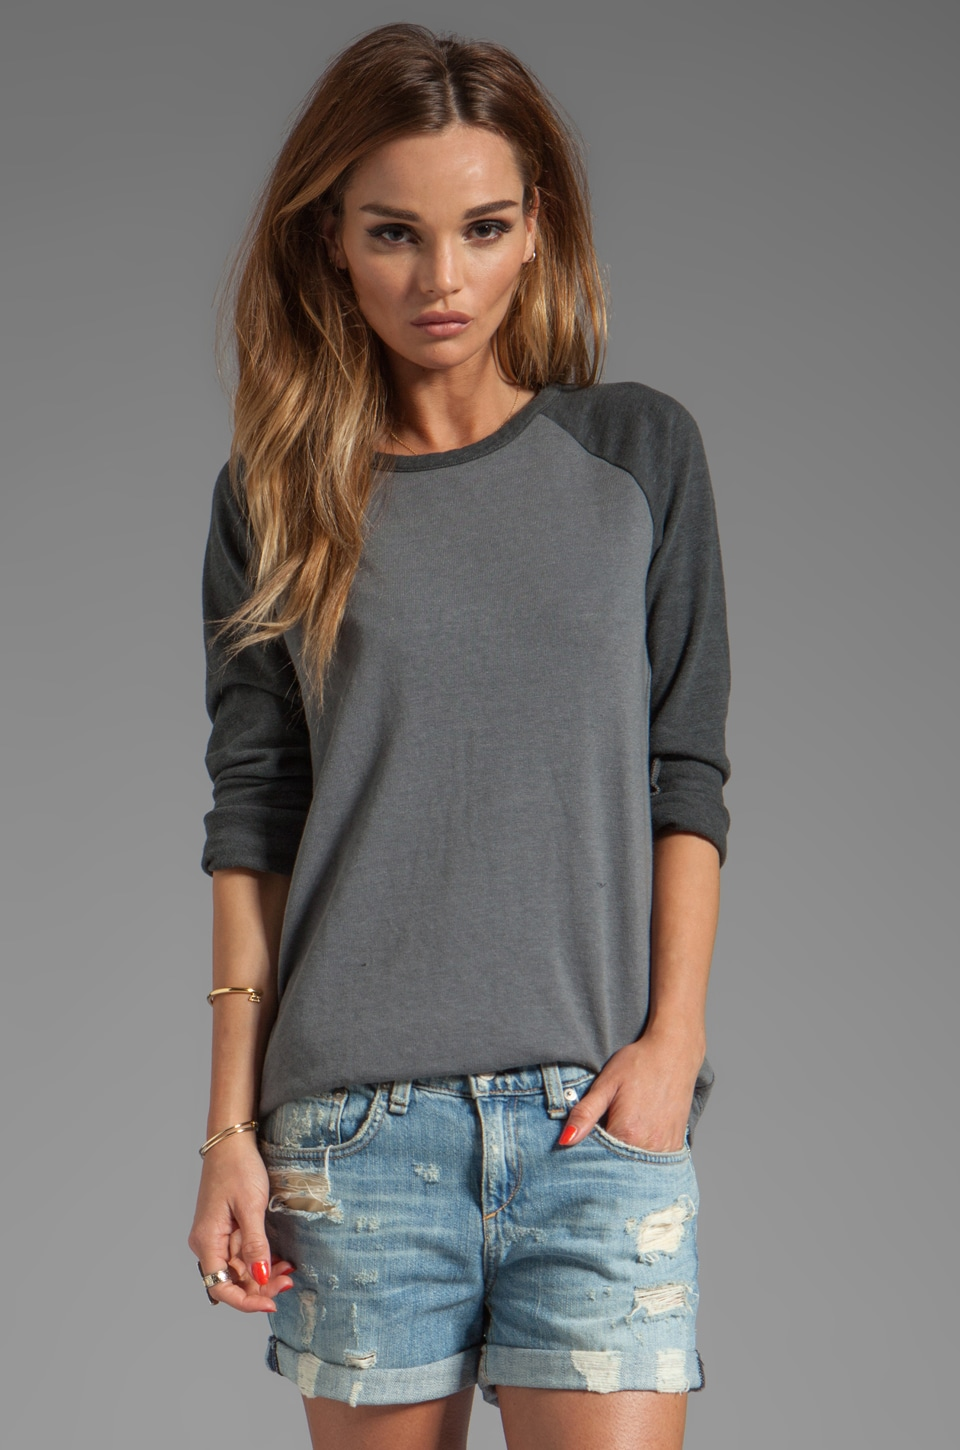 MONROW Rock Fleece Sweatshirt in Smoke